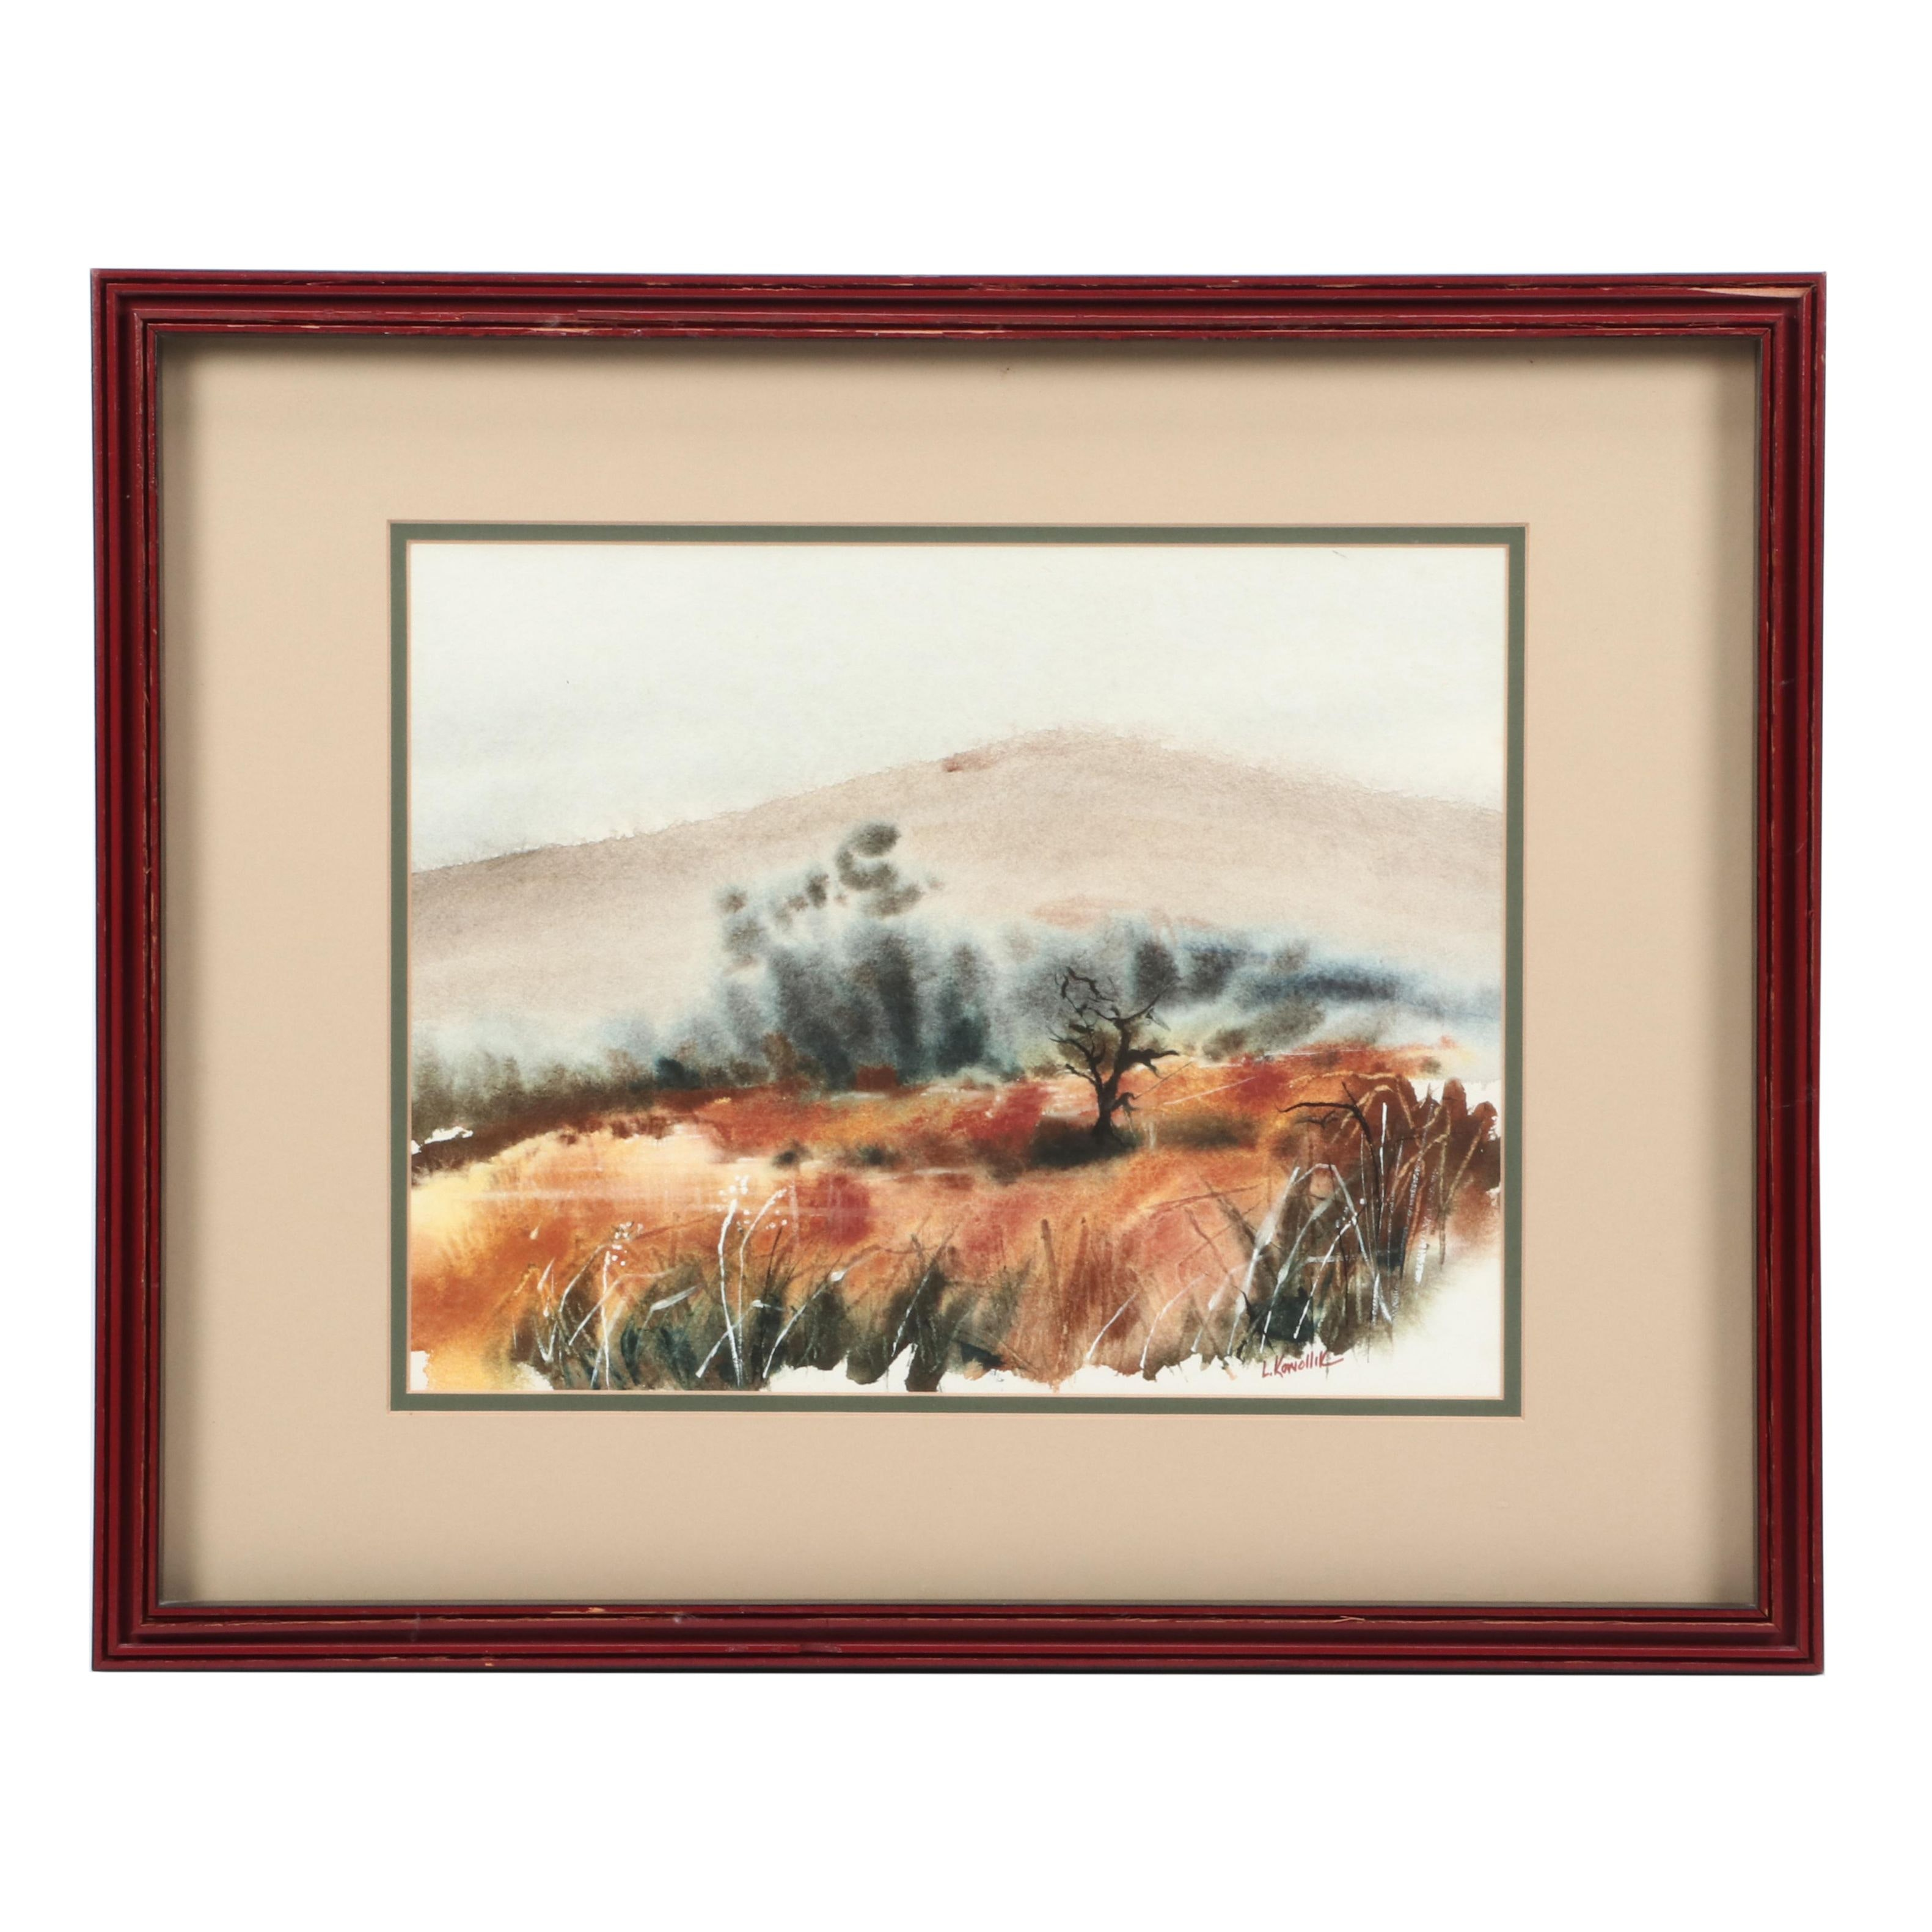 L. Konollik Abstract Watercolor Painting of Landscape